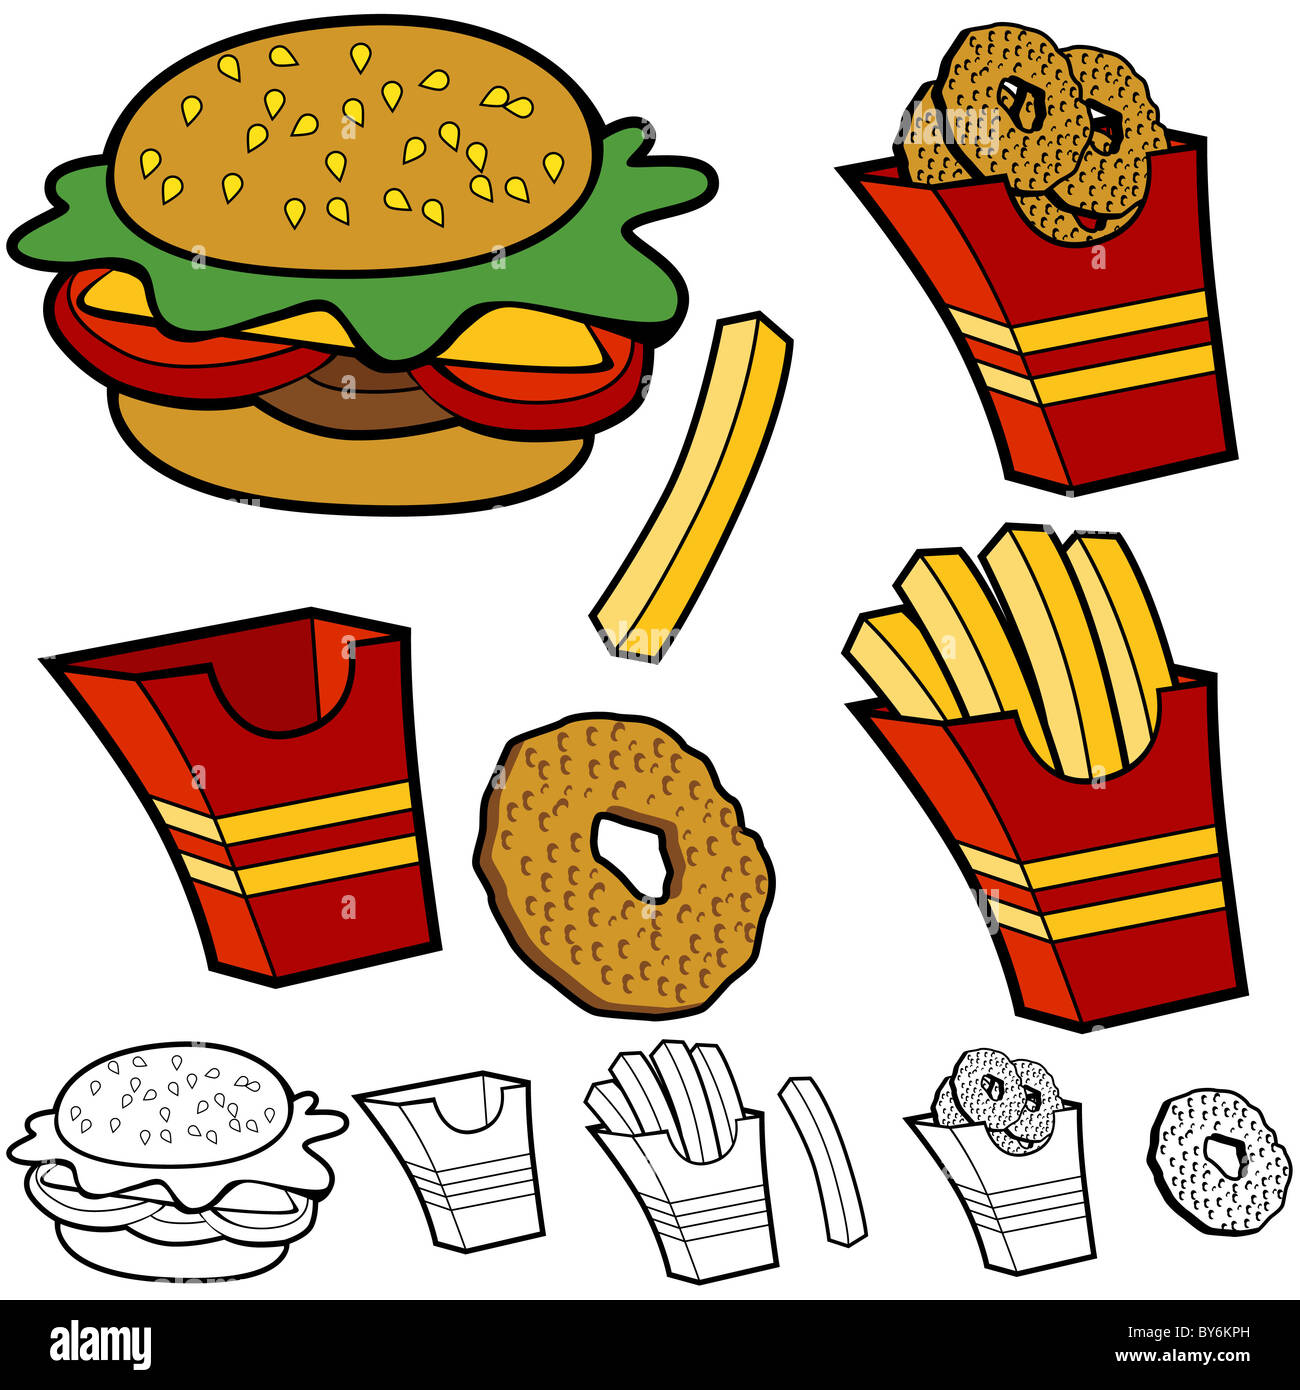 cartoon burger fries onion rings set isolated on a white background